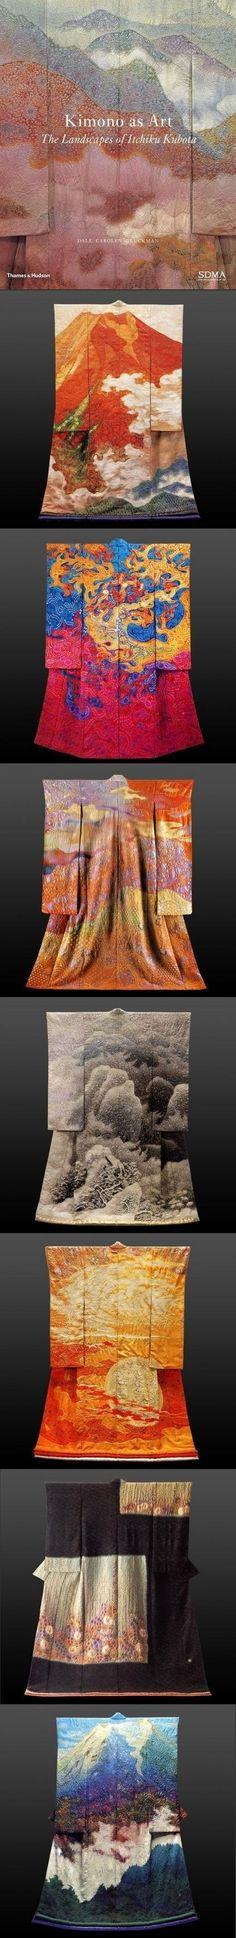 Landscape Kimonos by Itchiku Kubota (1917-2003) who brought to his work an emotional response to nature that was both deeply personal and uniquely Japanese. S)